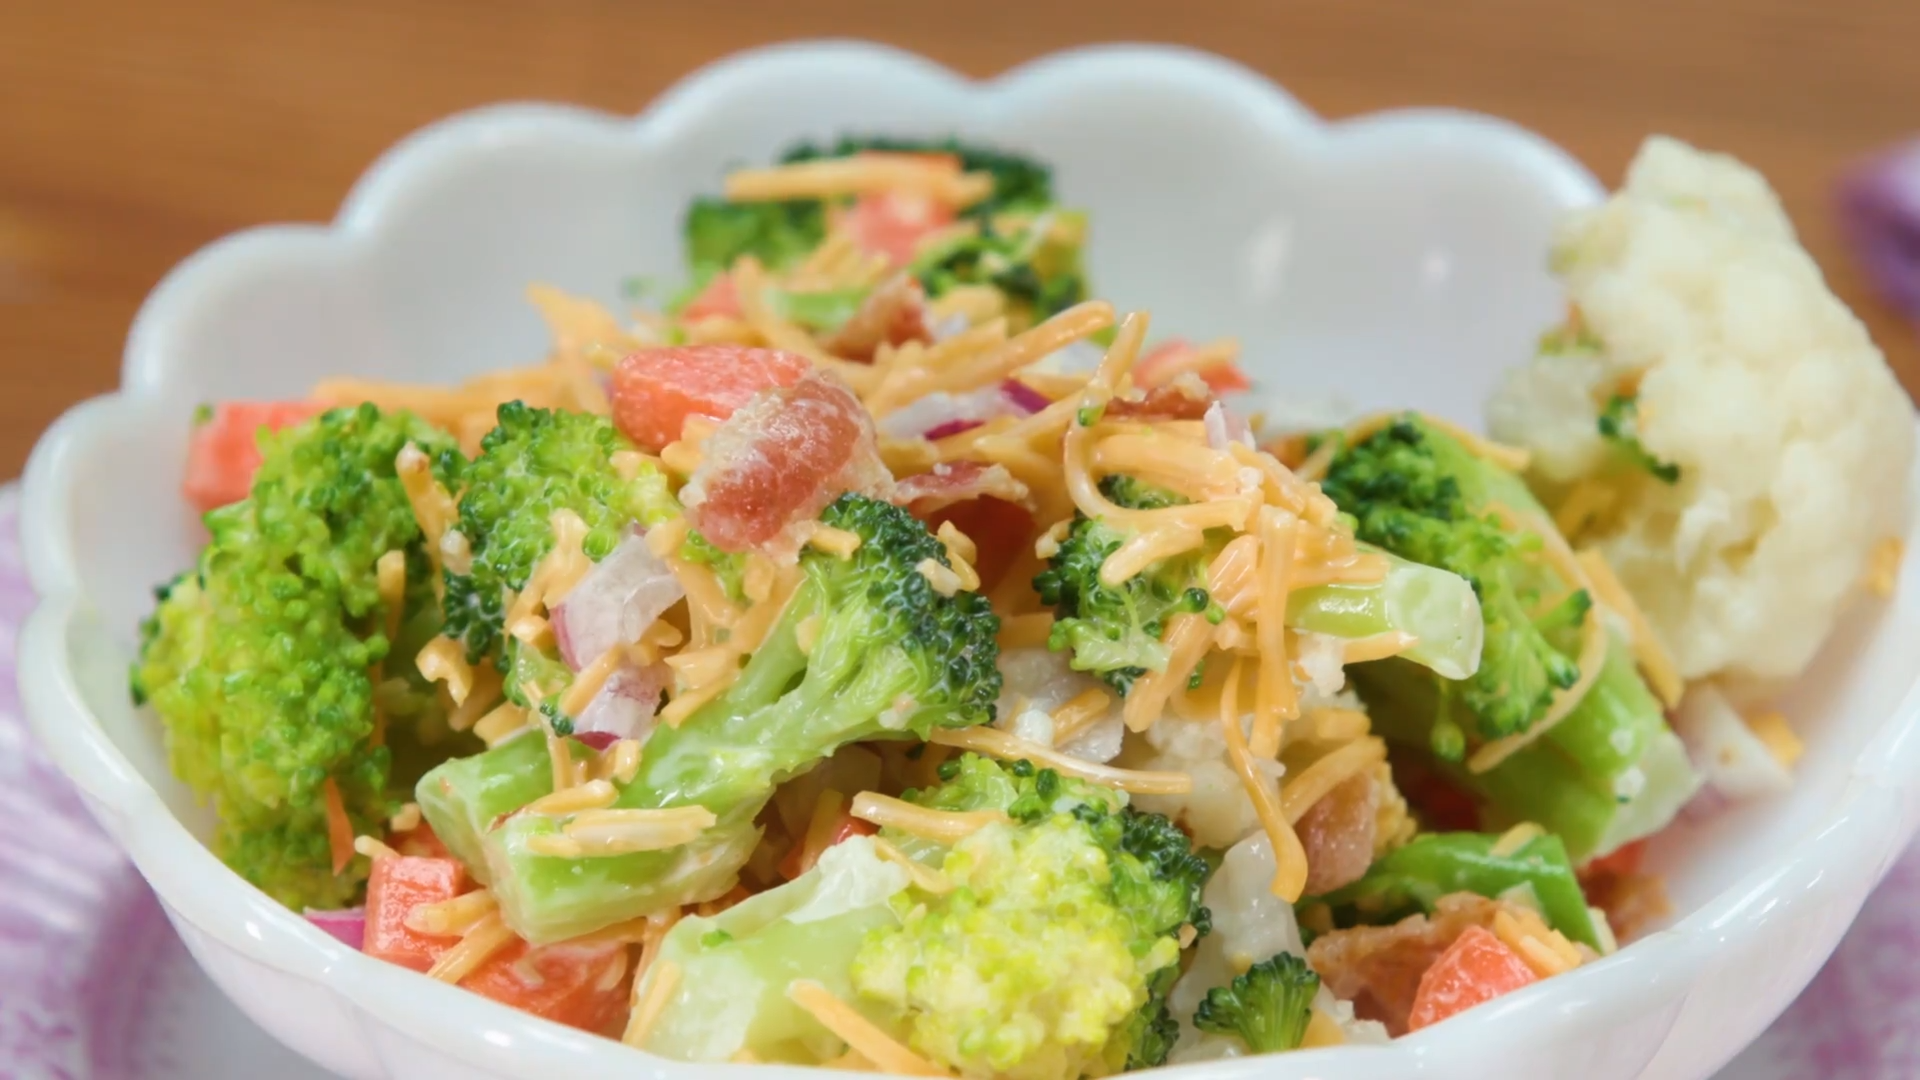 Chubba Bubba's Broccoli Salad